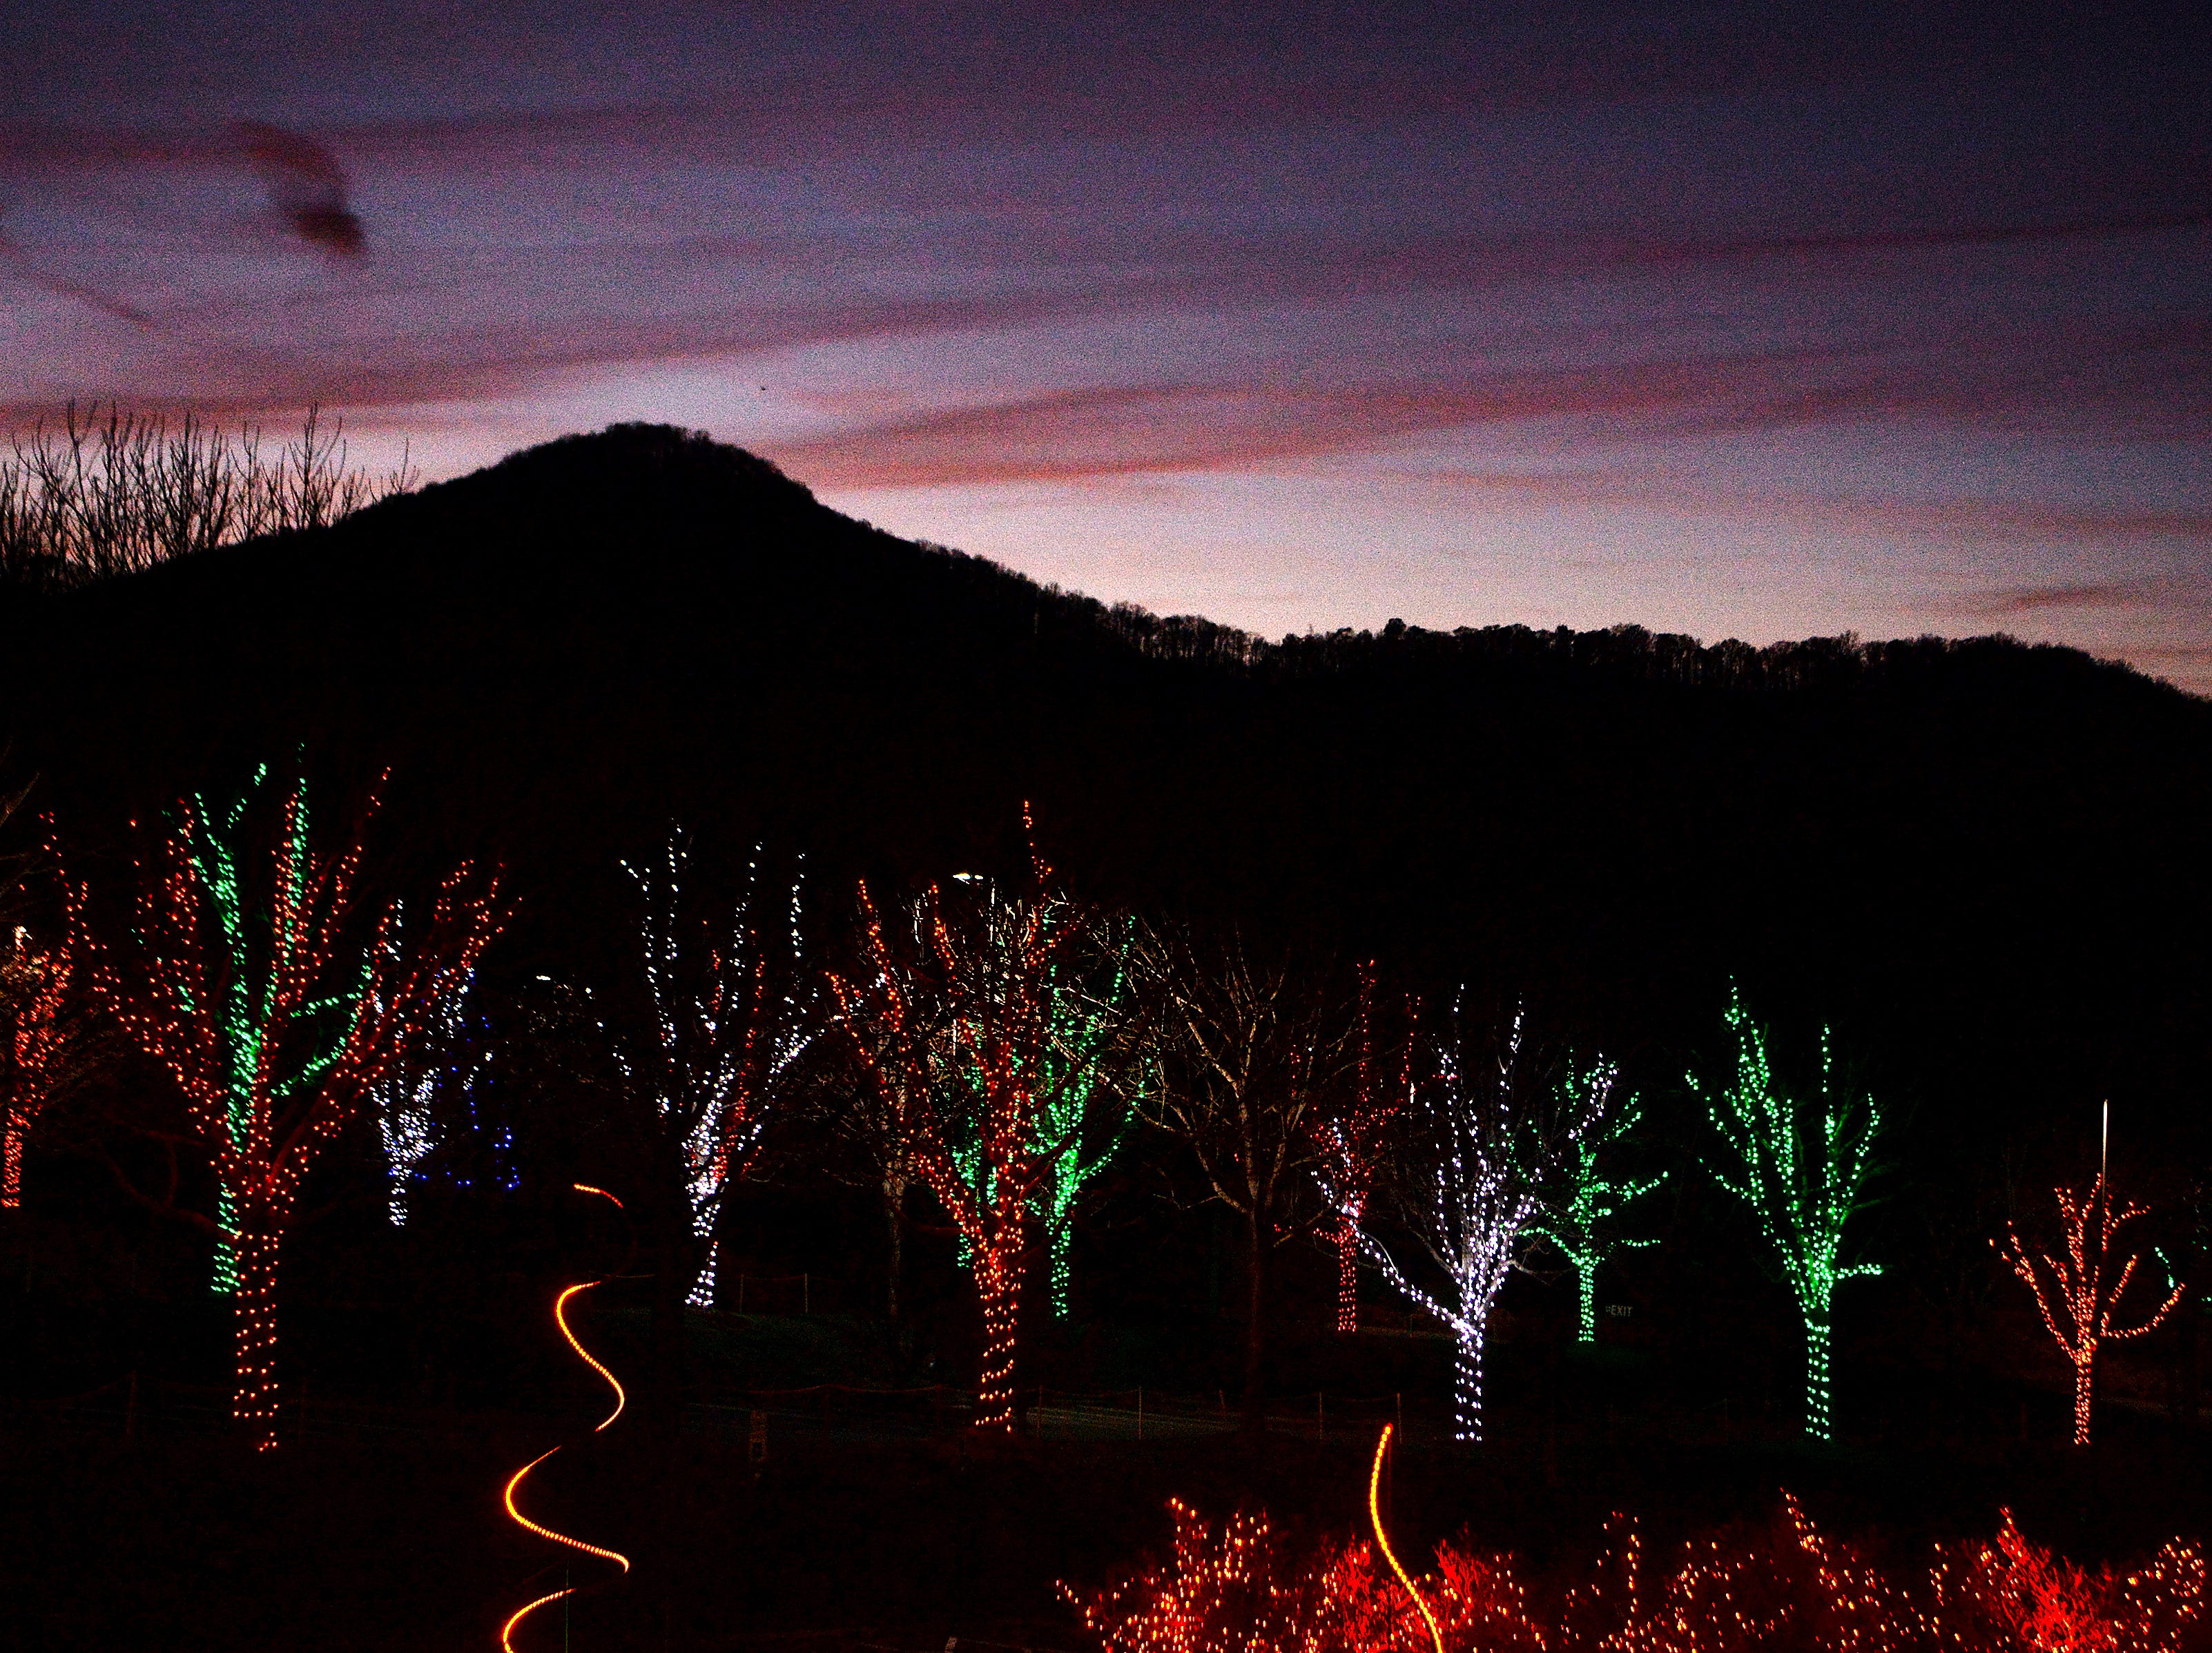 The North Carolina Arboretum's annual Winter Lights show will be open nightly through the end of the year featuring numerous festive displays using more than 500,000 LED bulbs.